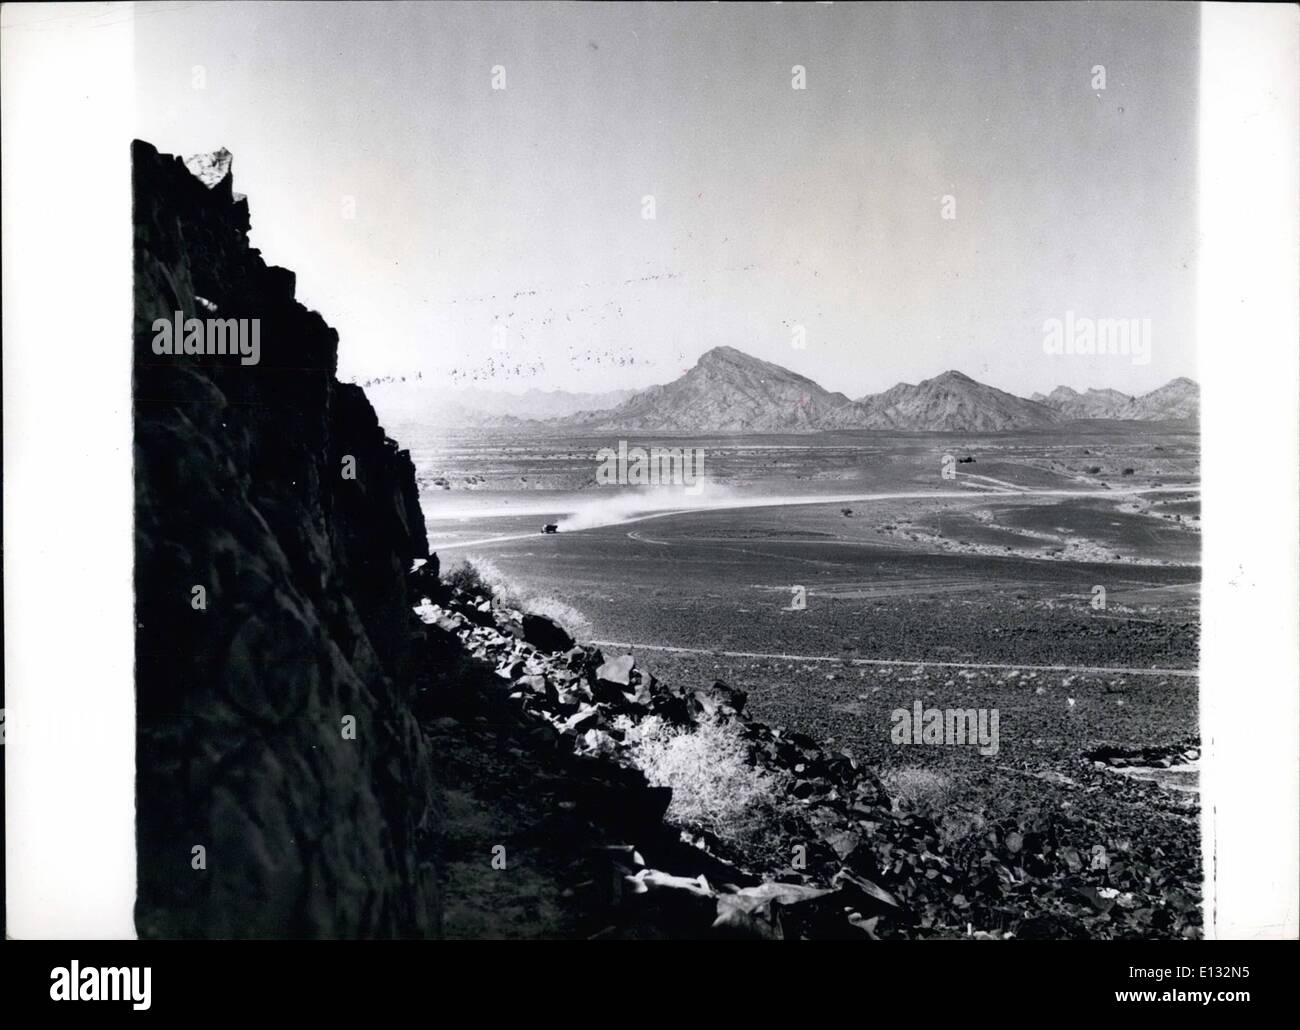 Feb. 26, 2012 - Yemen-Aden Border.: The lonely ambush country of the Aden protectorate showing they Yemen border in the background. - Stock Image